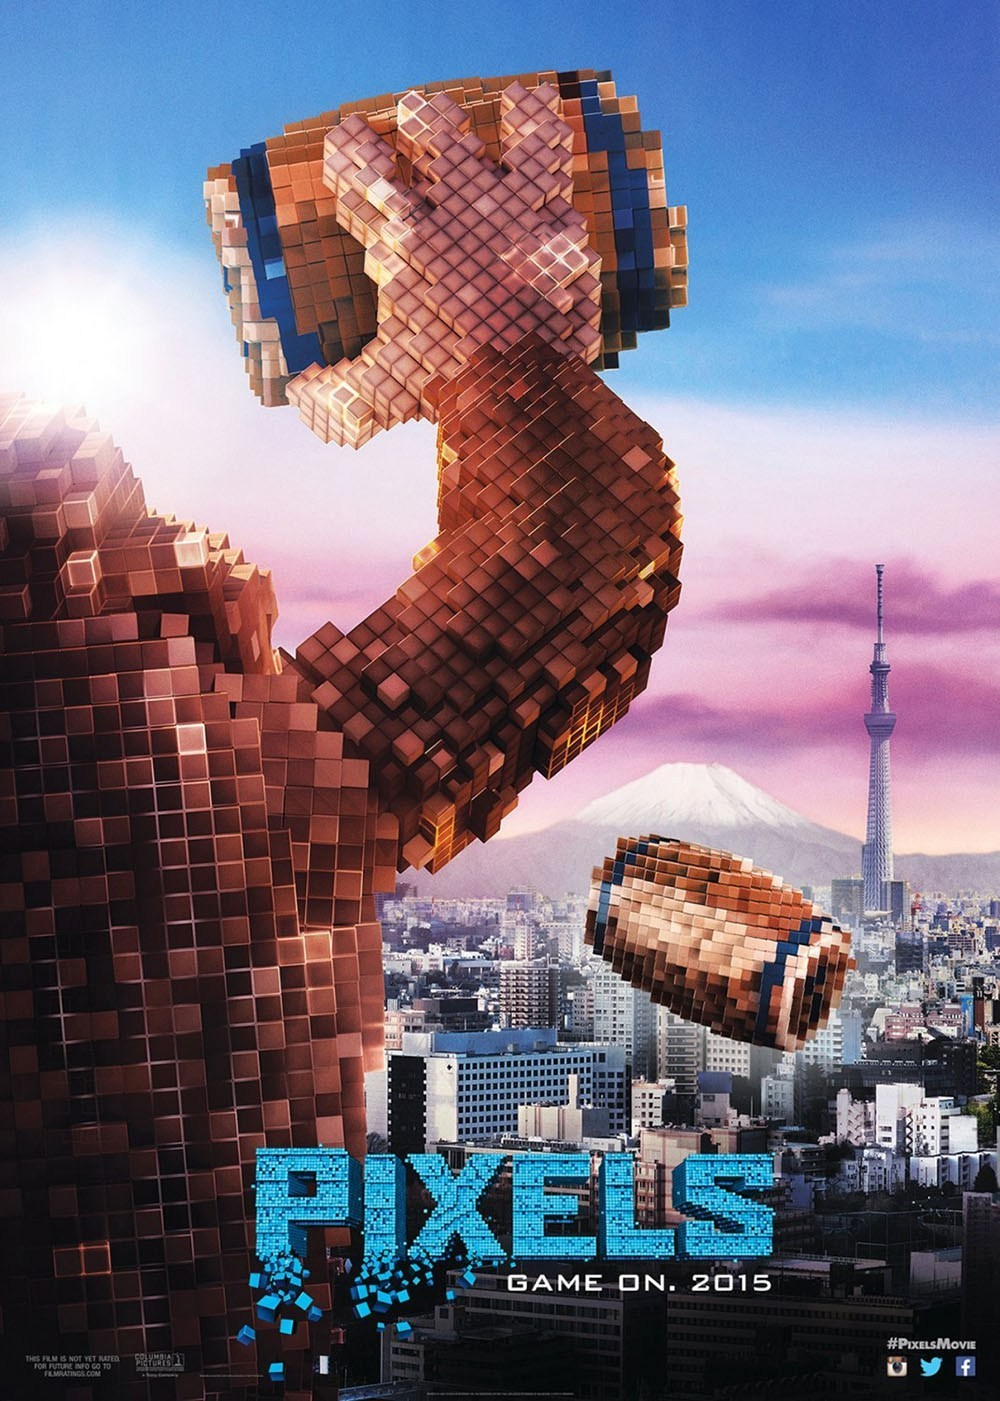 Retro Video Games Destroy Cities in the New 'Pixels